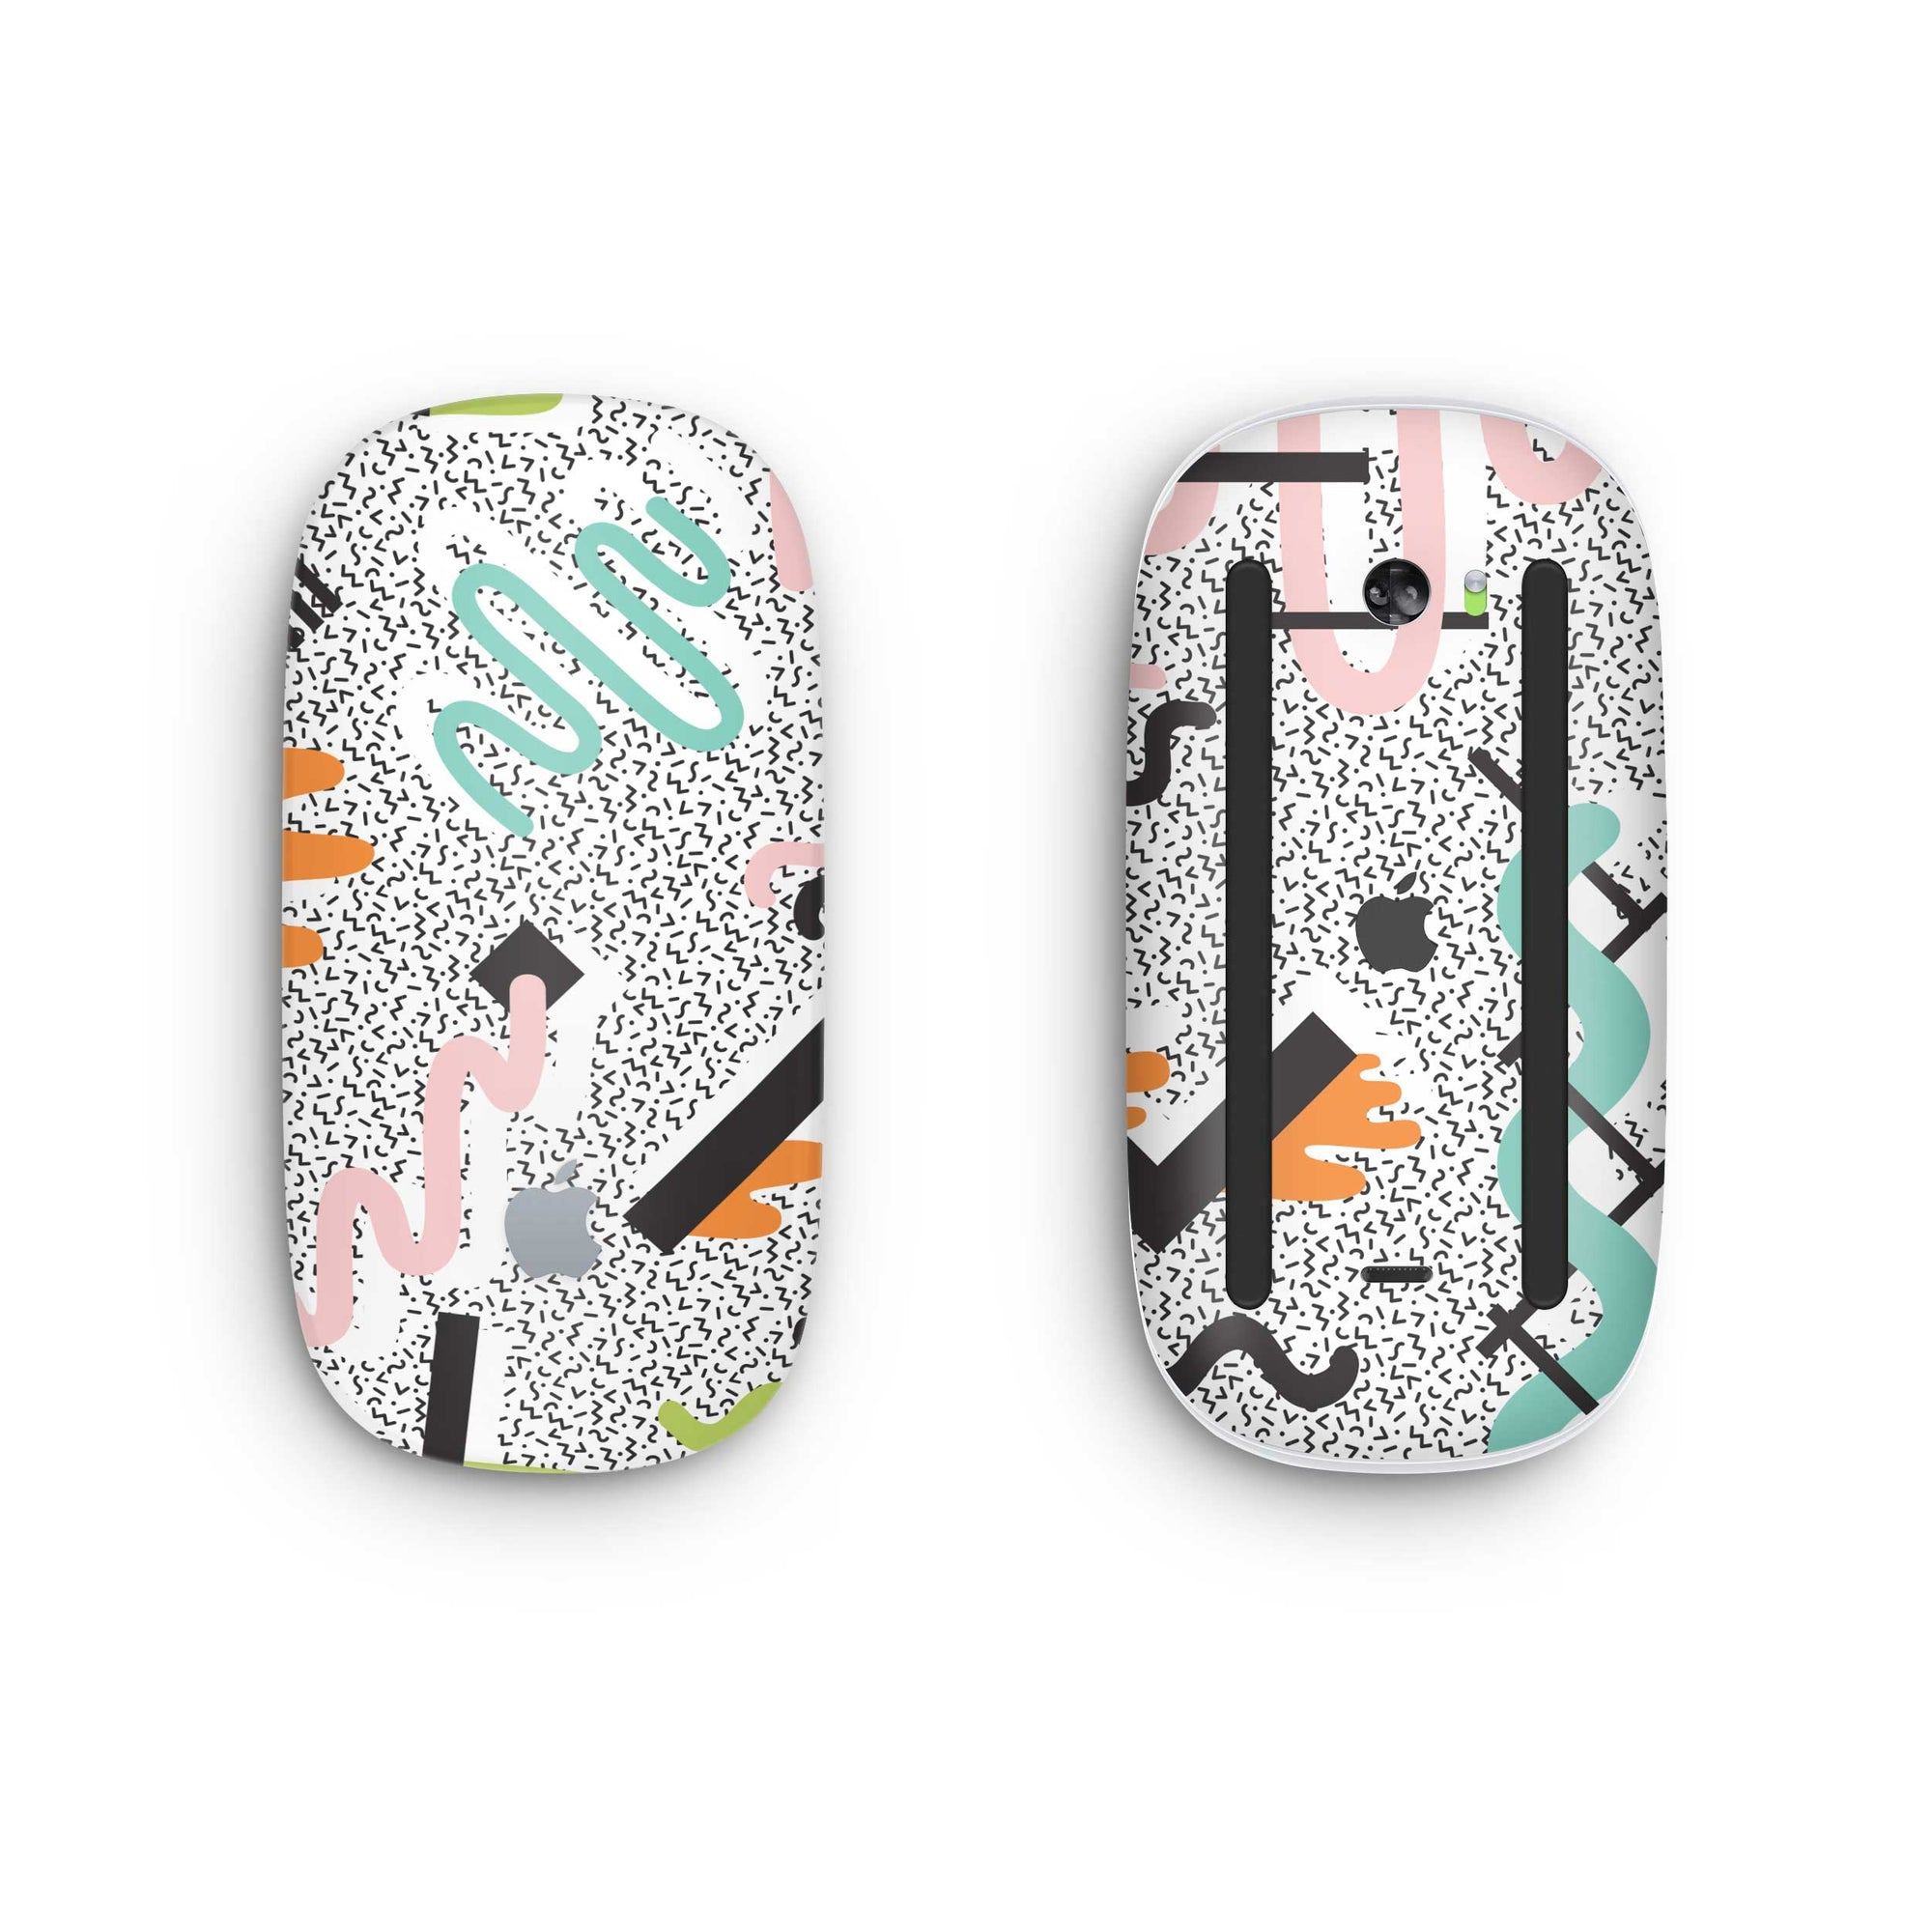 True Memphis Magic Mouse 2 Skin